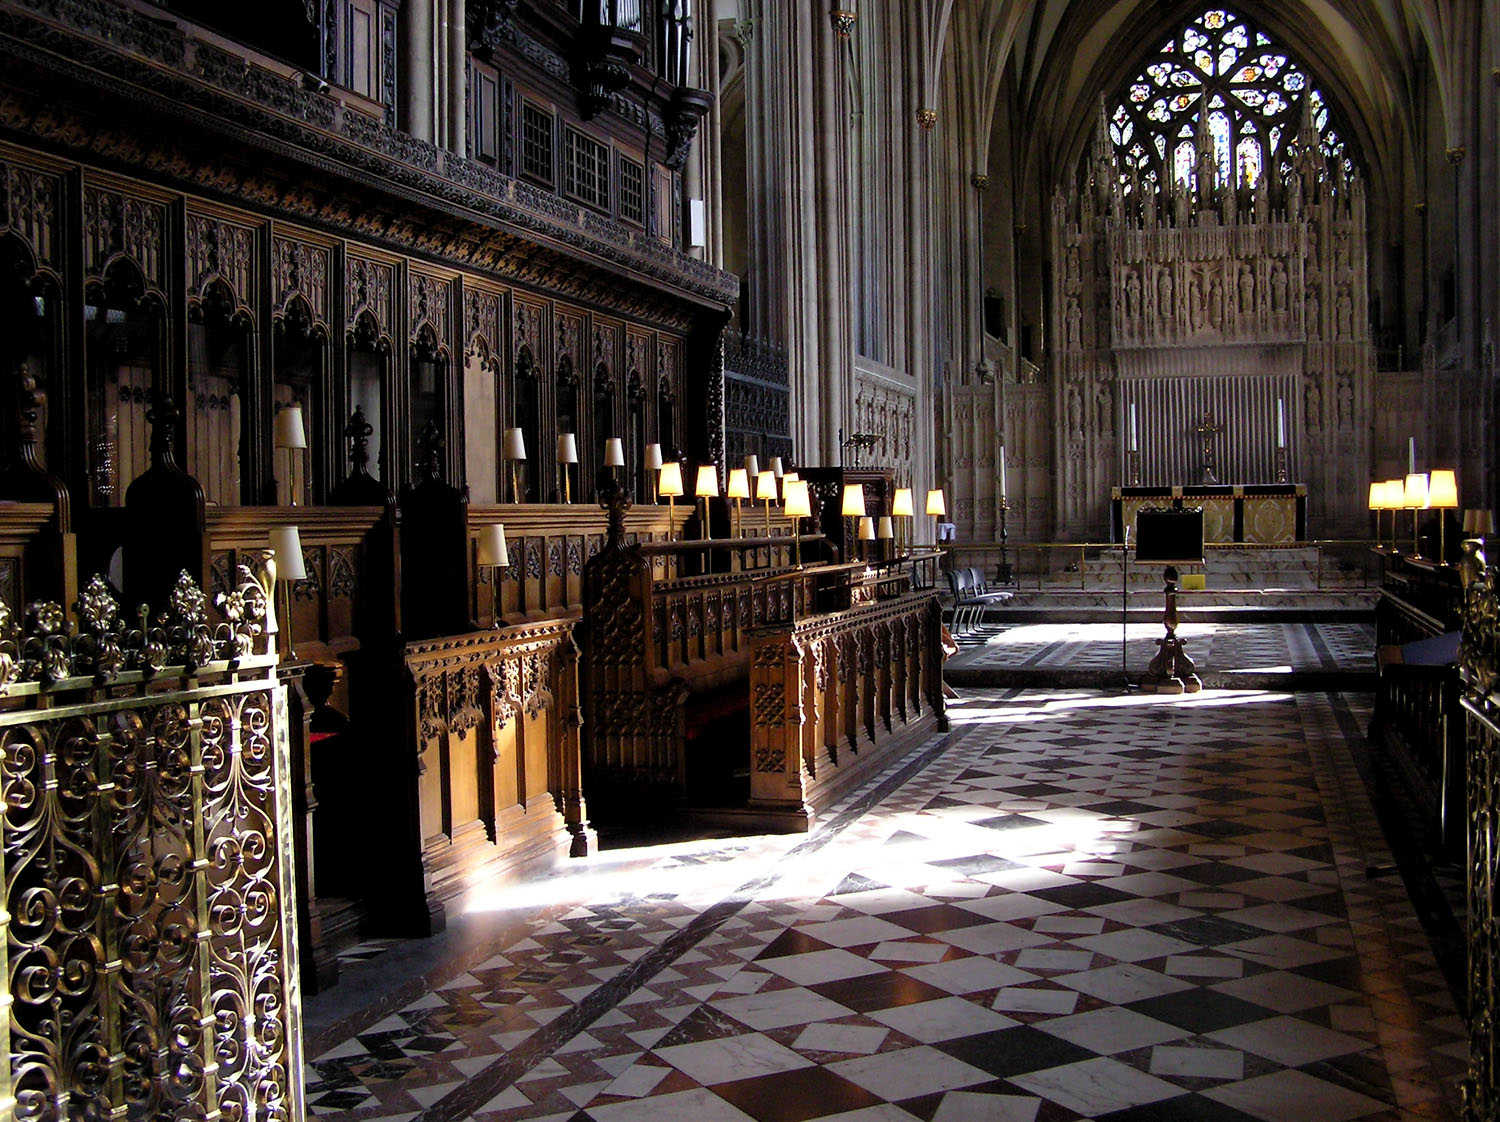 File:Cathedral.architecture.bristol.arp.jpg - Wikipedia, the free ...